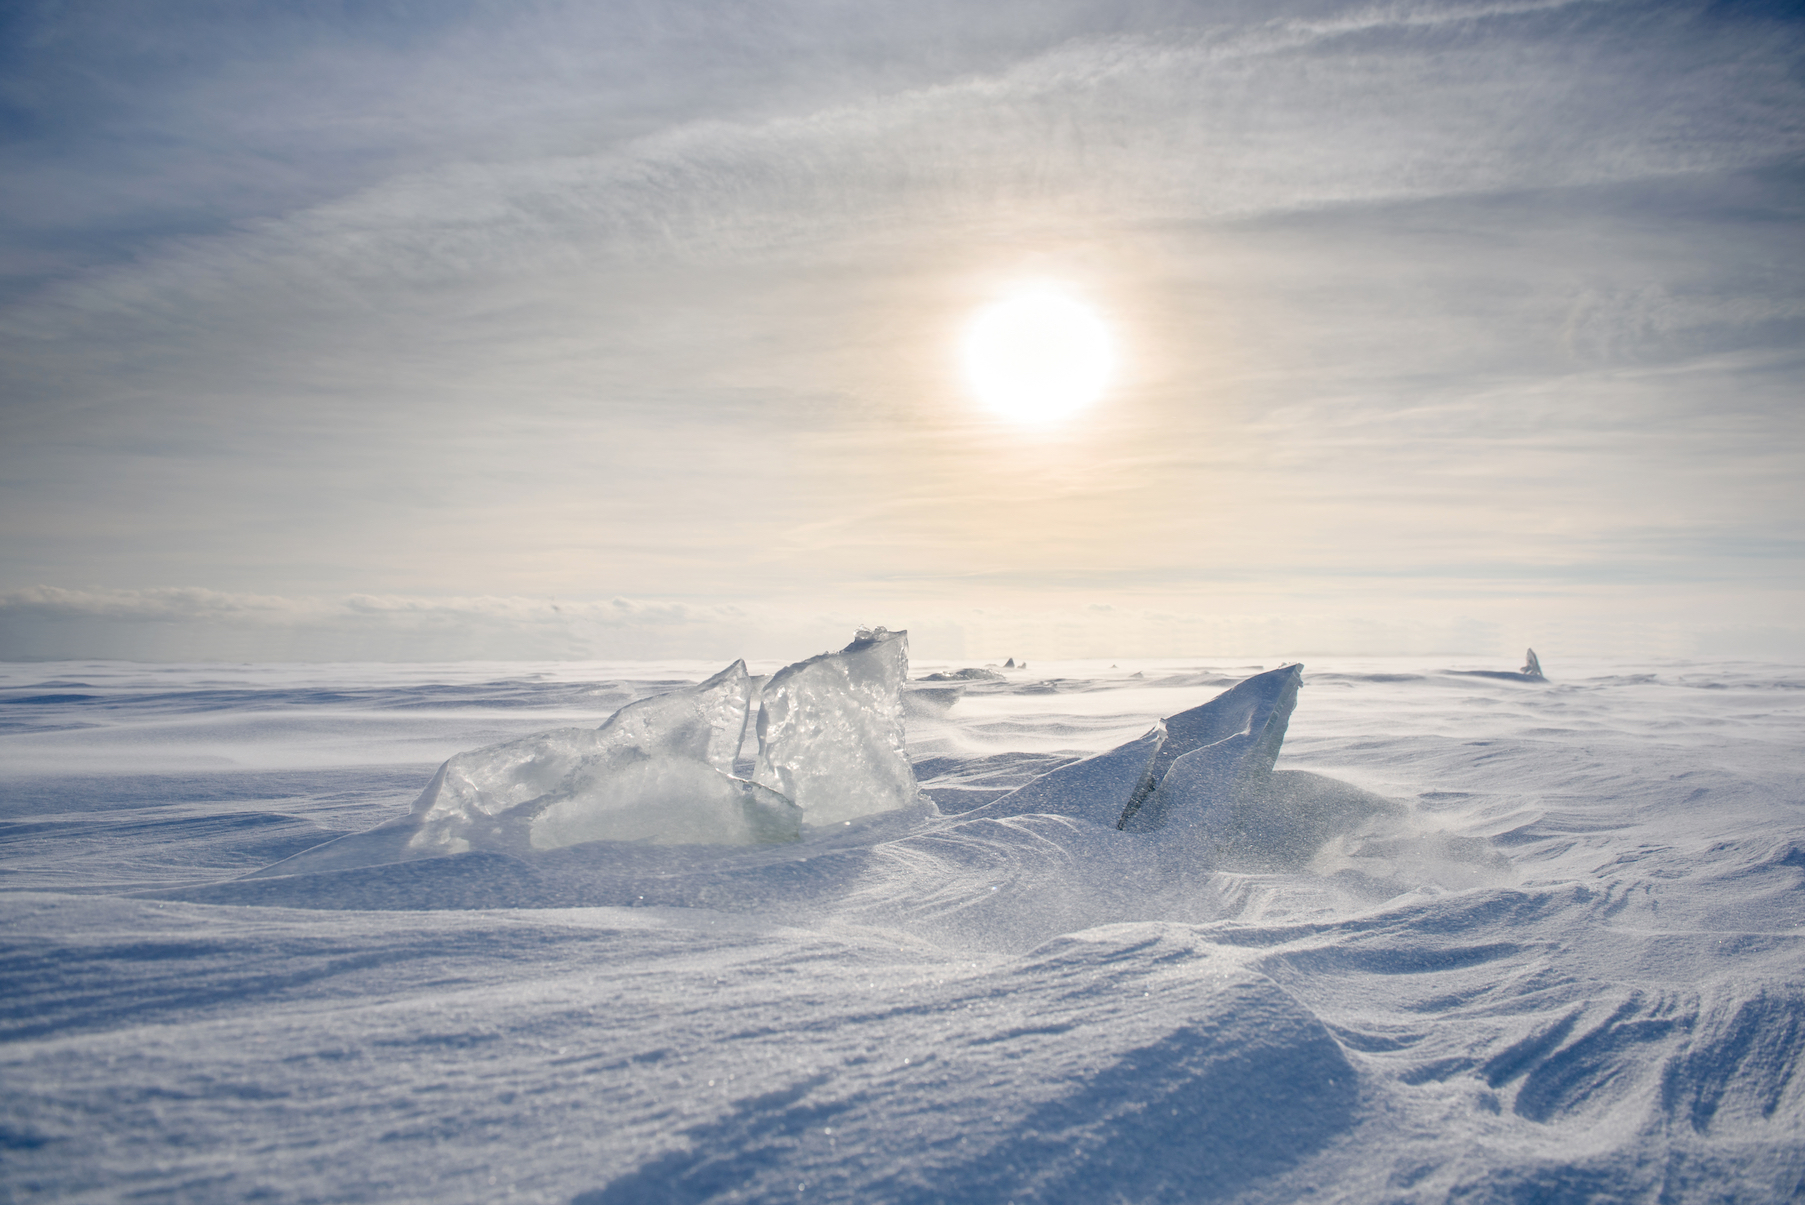 In honor of the brisk weather approaching, Earth.com has compiled a list of 10 of the coldest places in the world.